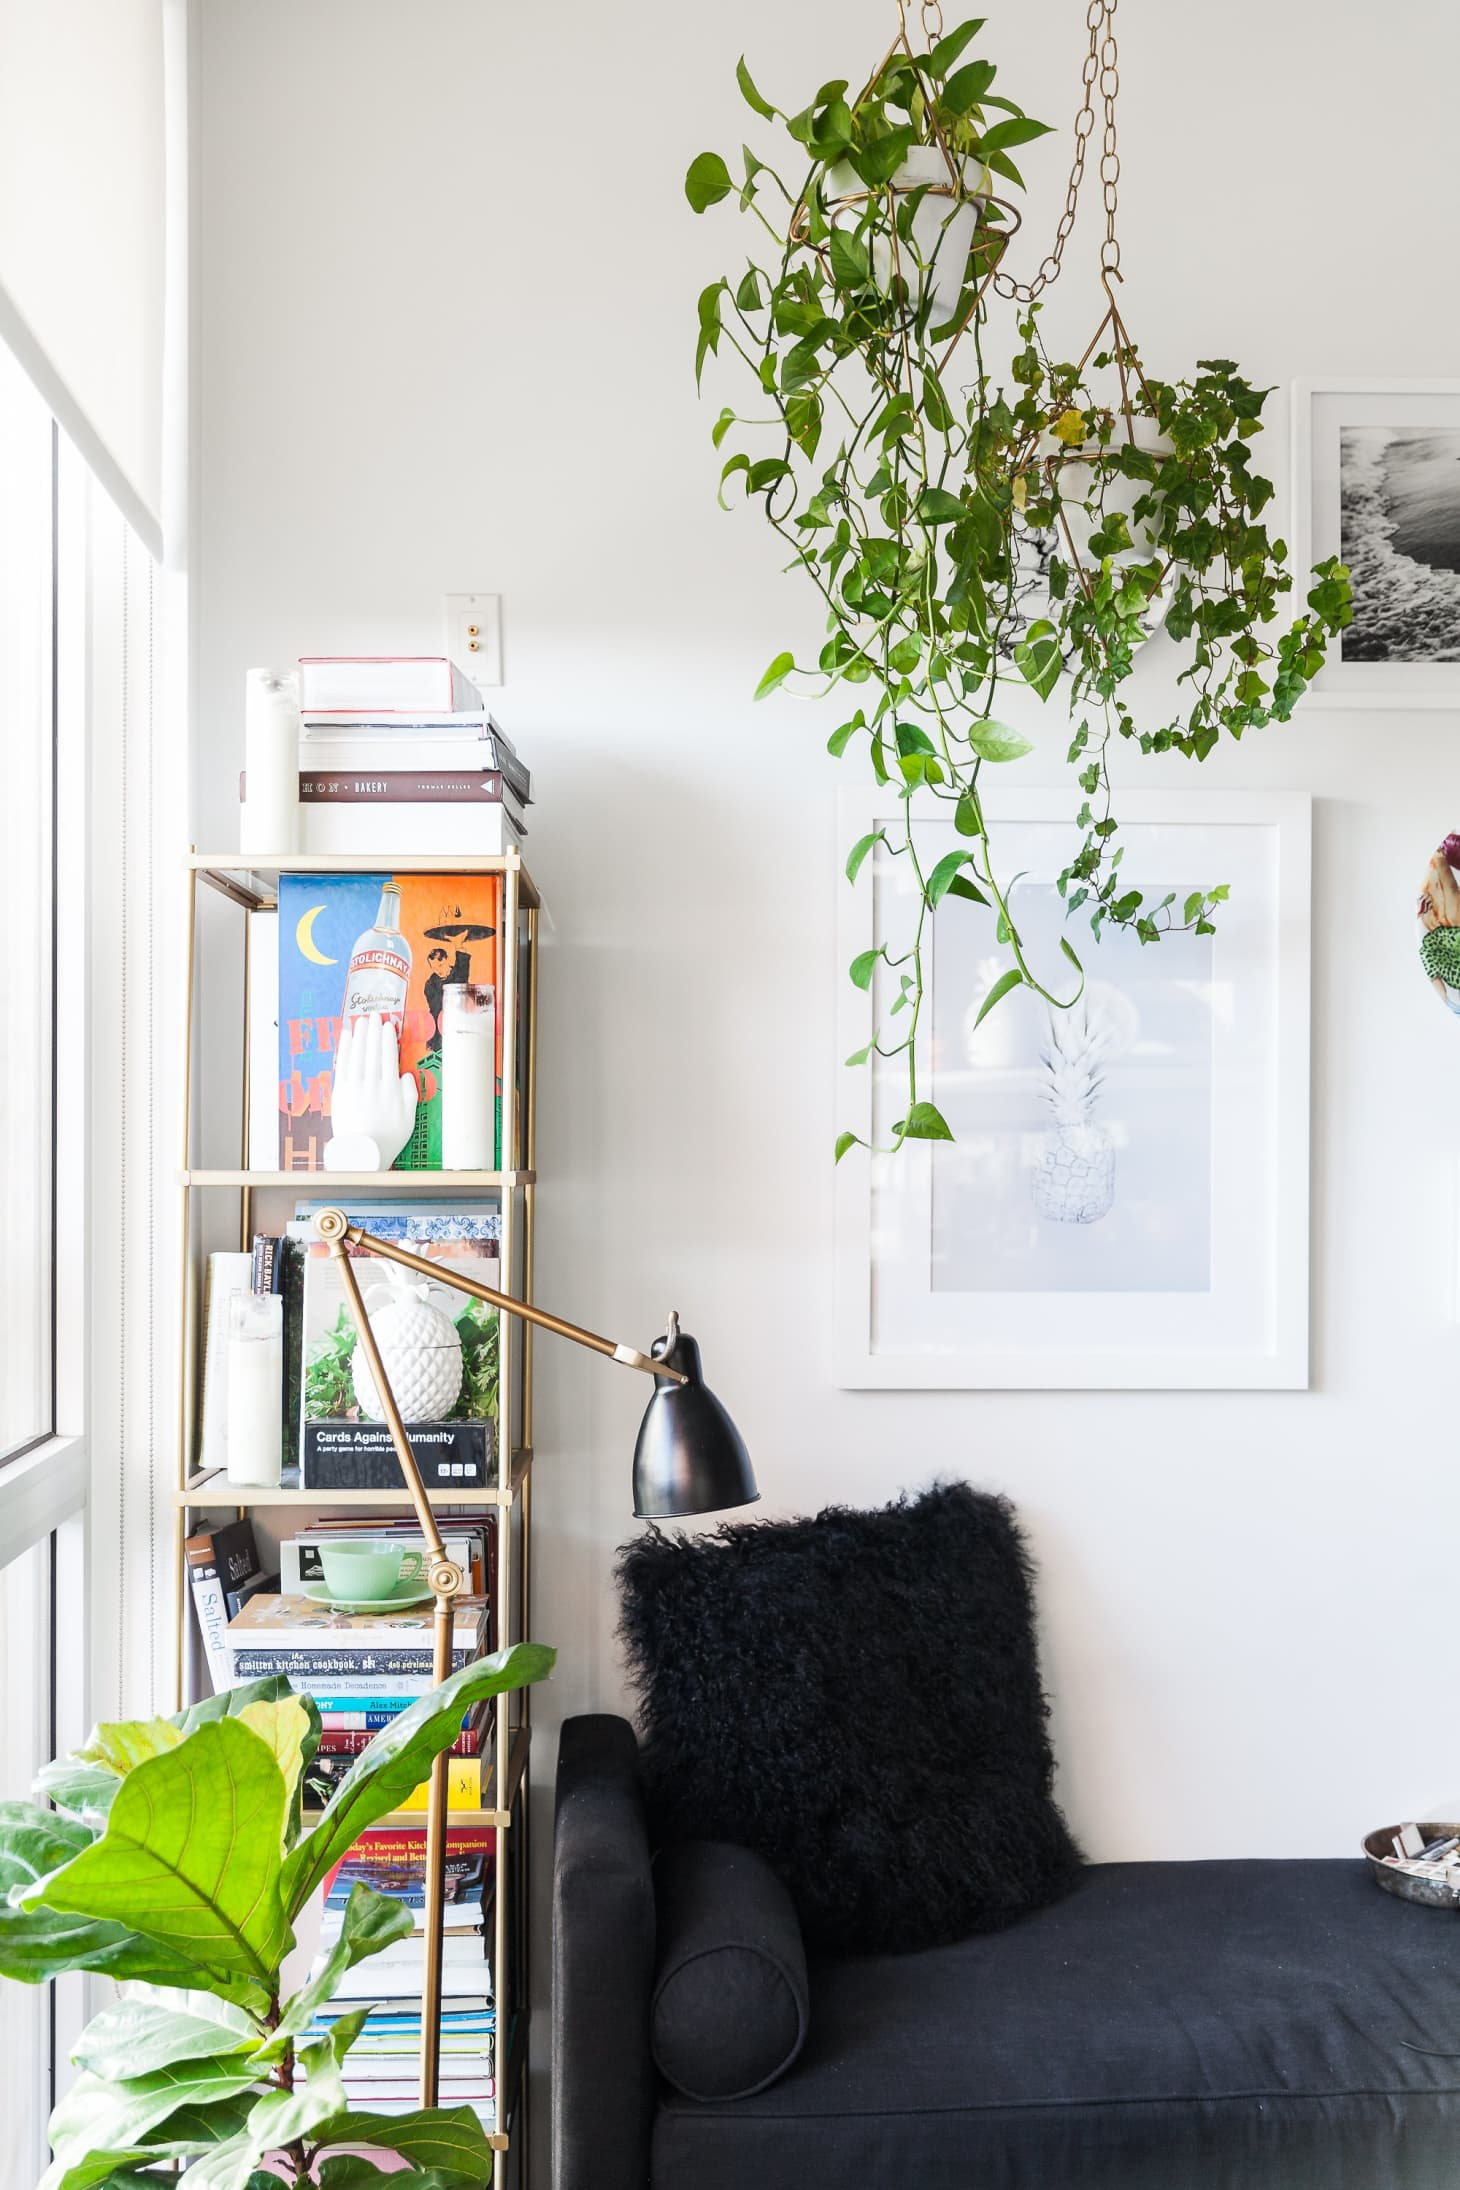 English Ivy: Best Tips for Growing + Care | Apartment Therapy on common plants used in baskets florist, common house plant problems, common household plants, round leaves with ivy, variegated ivy, common names of indoor plants, hedera glacier ivy,